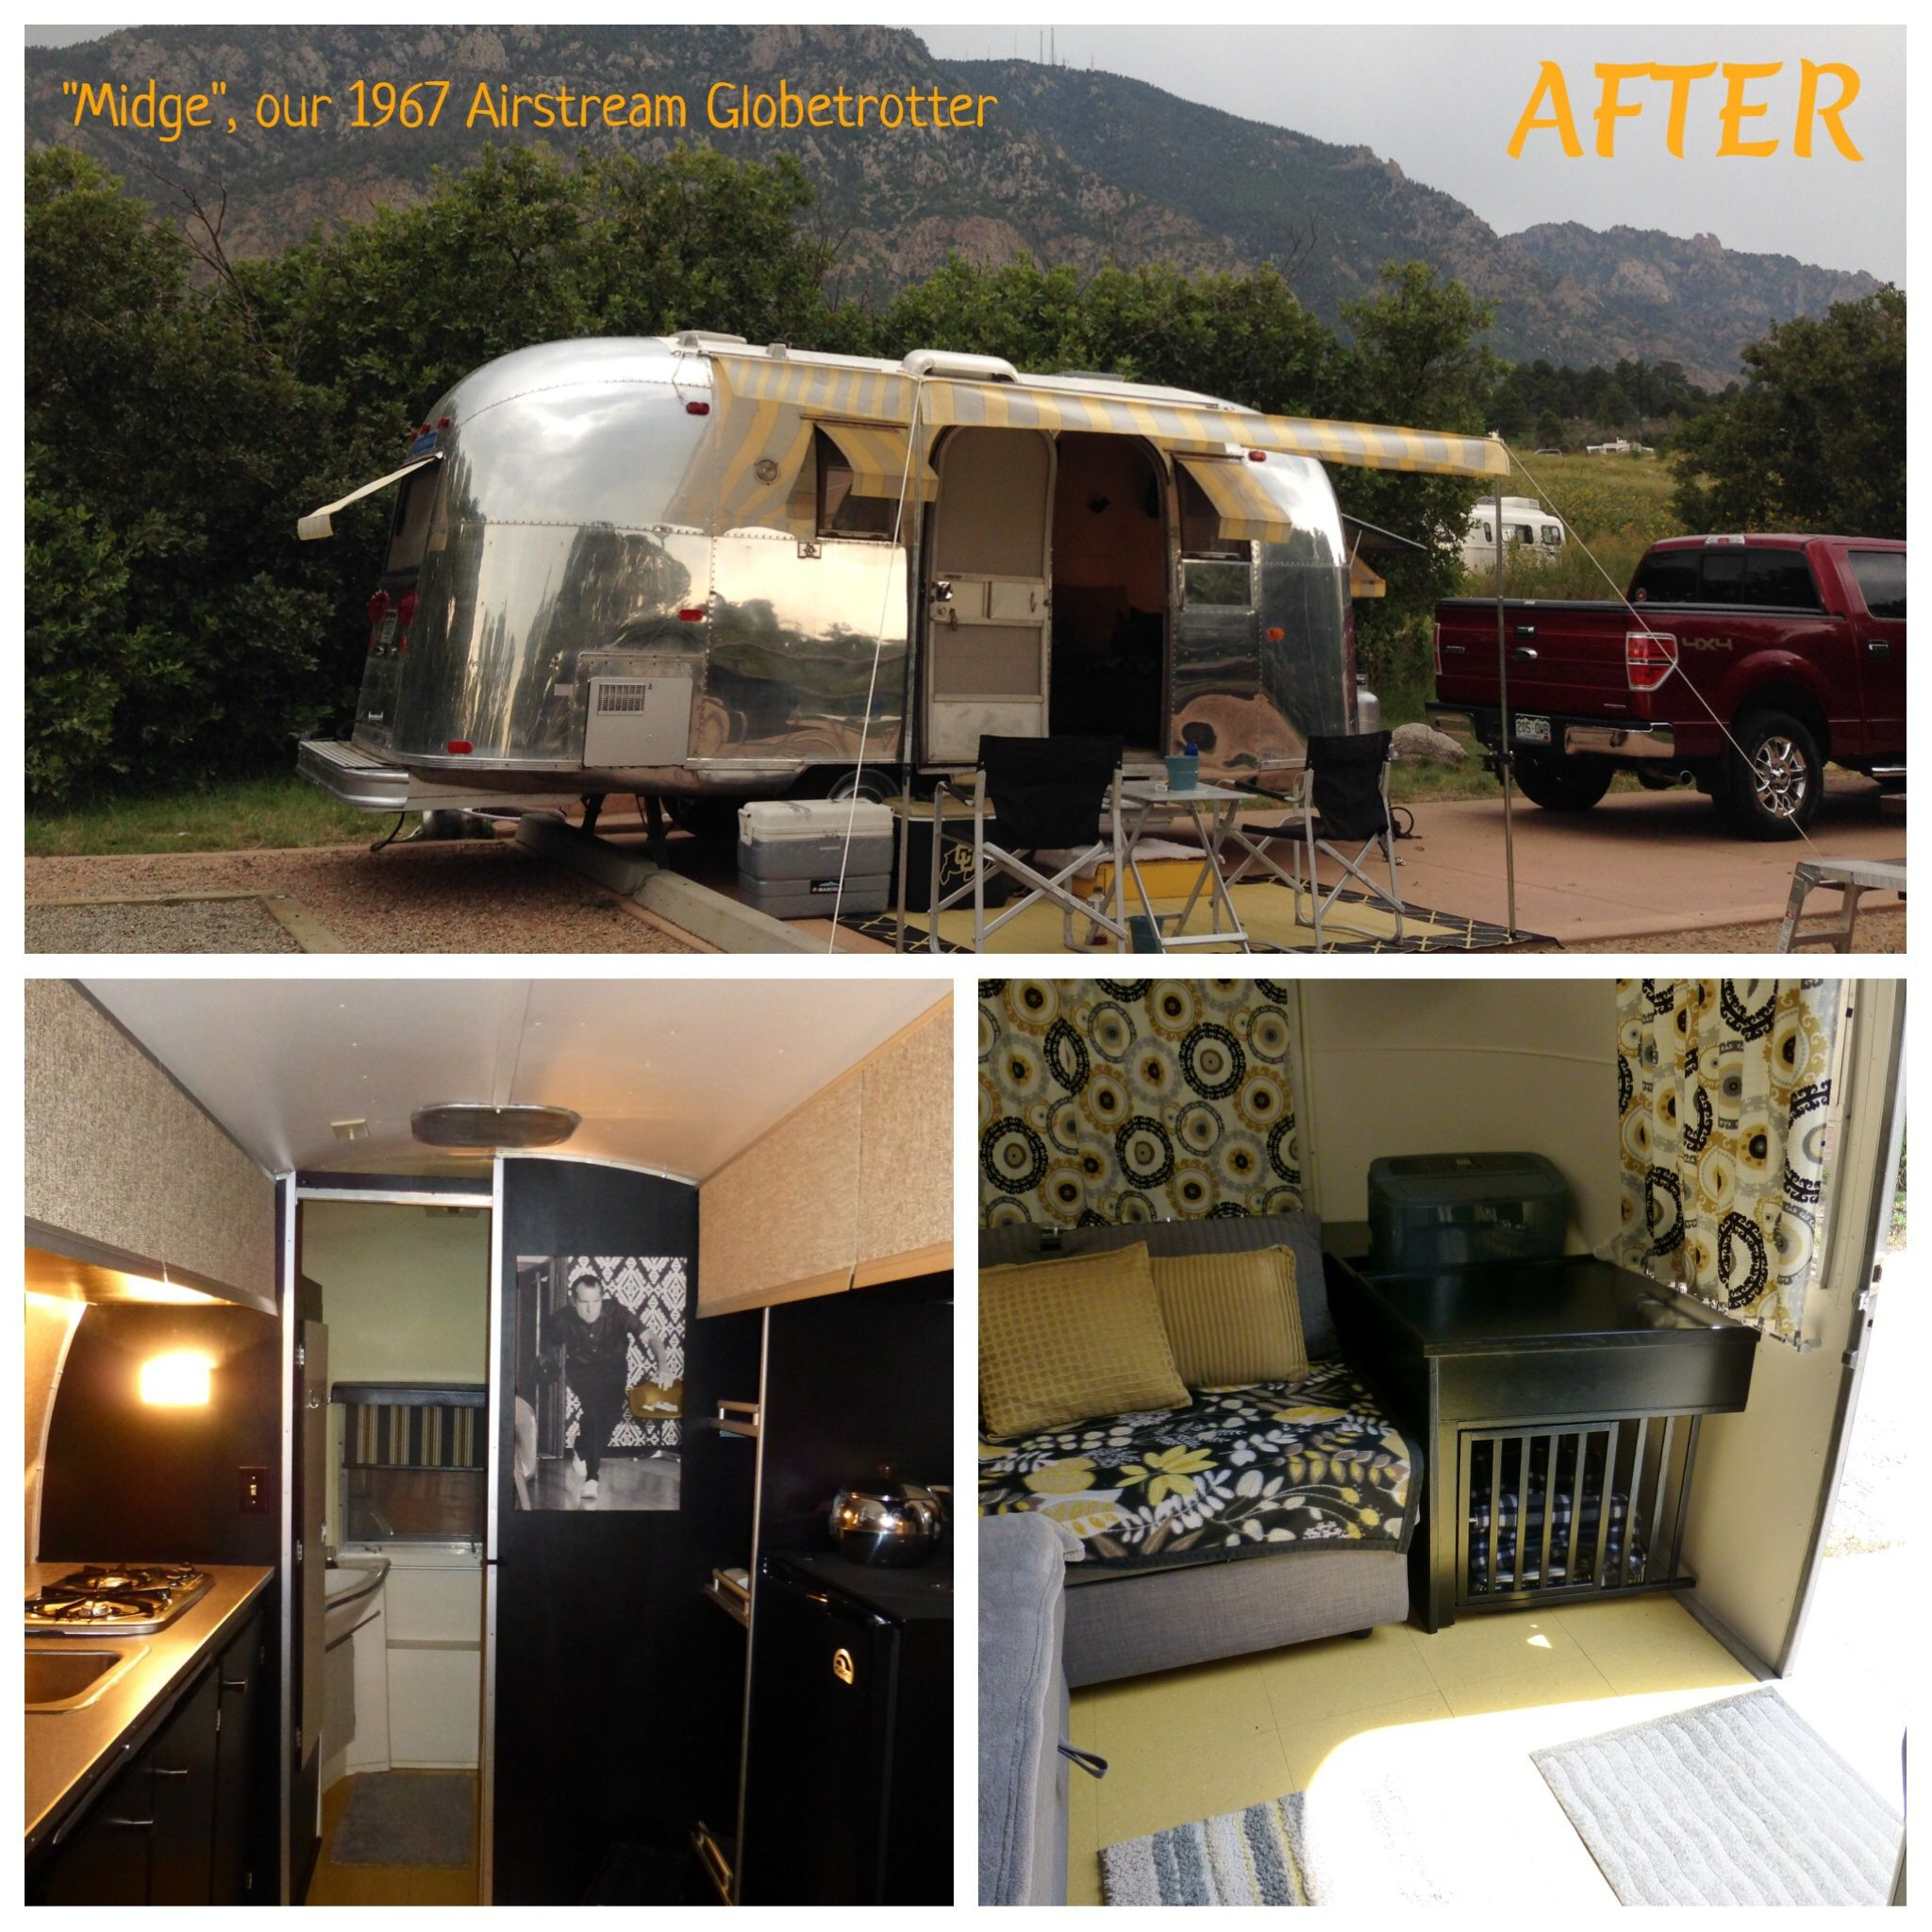 Check out the vintage camper and trailer hobby mid century modern trailer trash